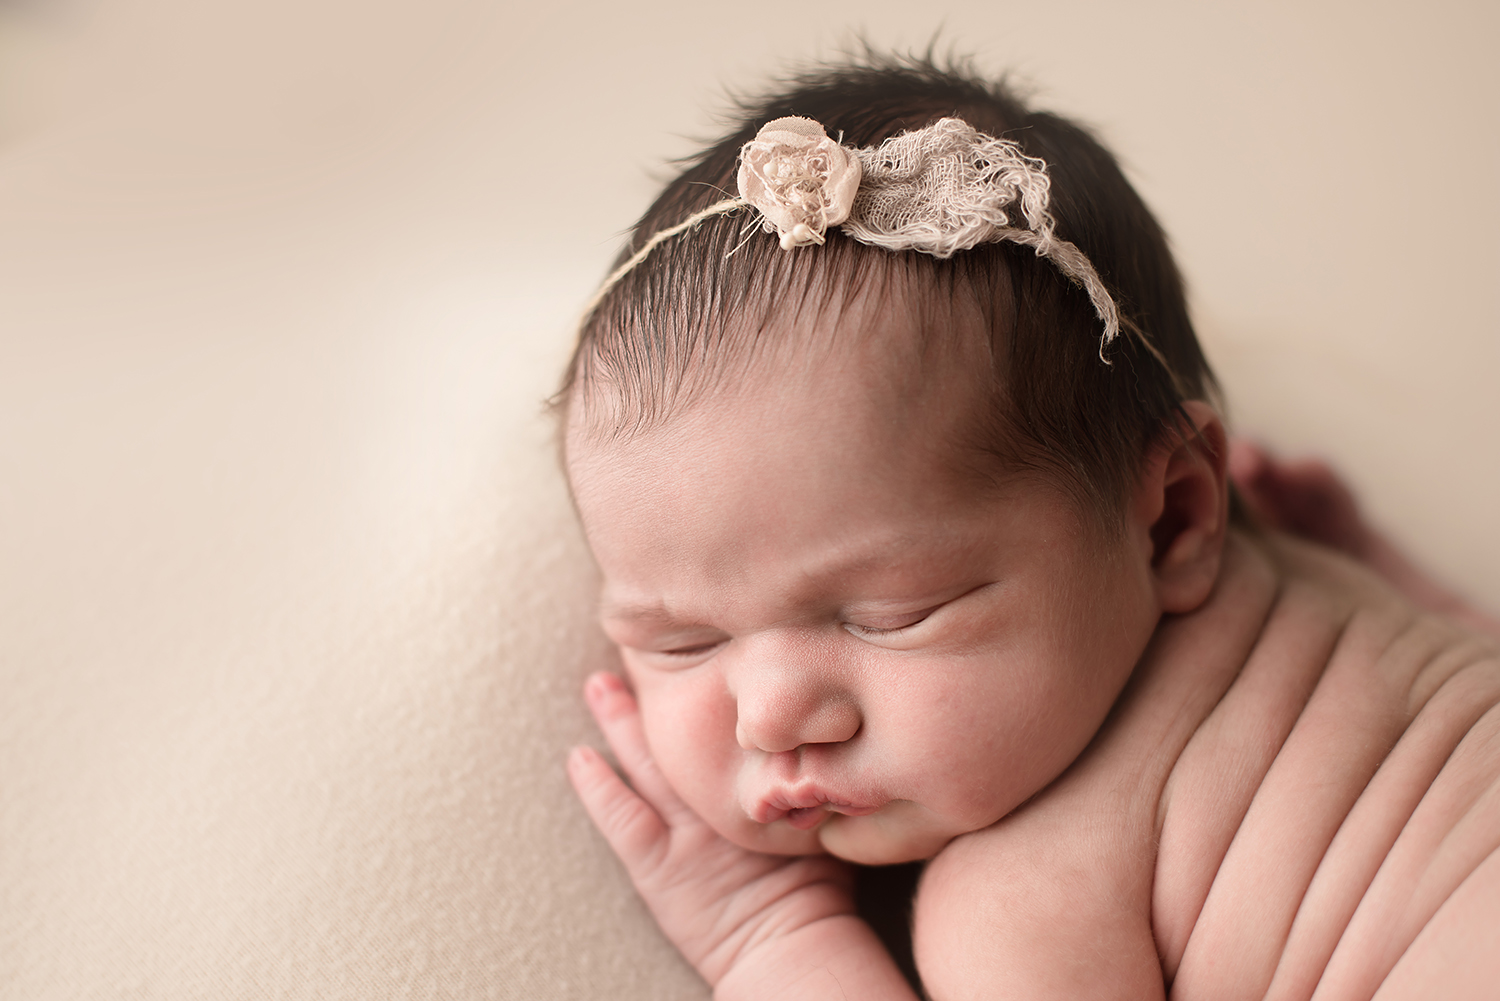 newborn-photographers-columbus-ohio-bare-baby.jpg